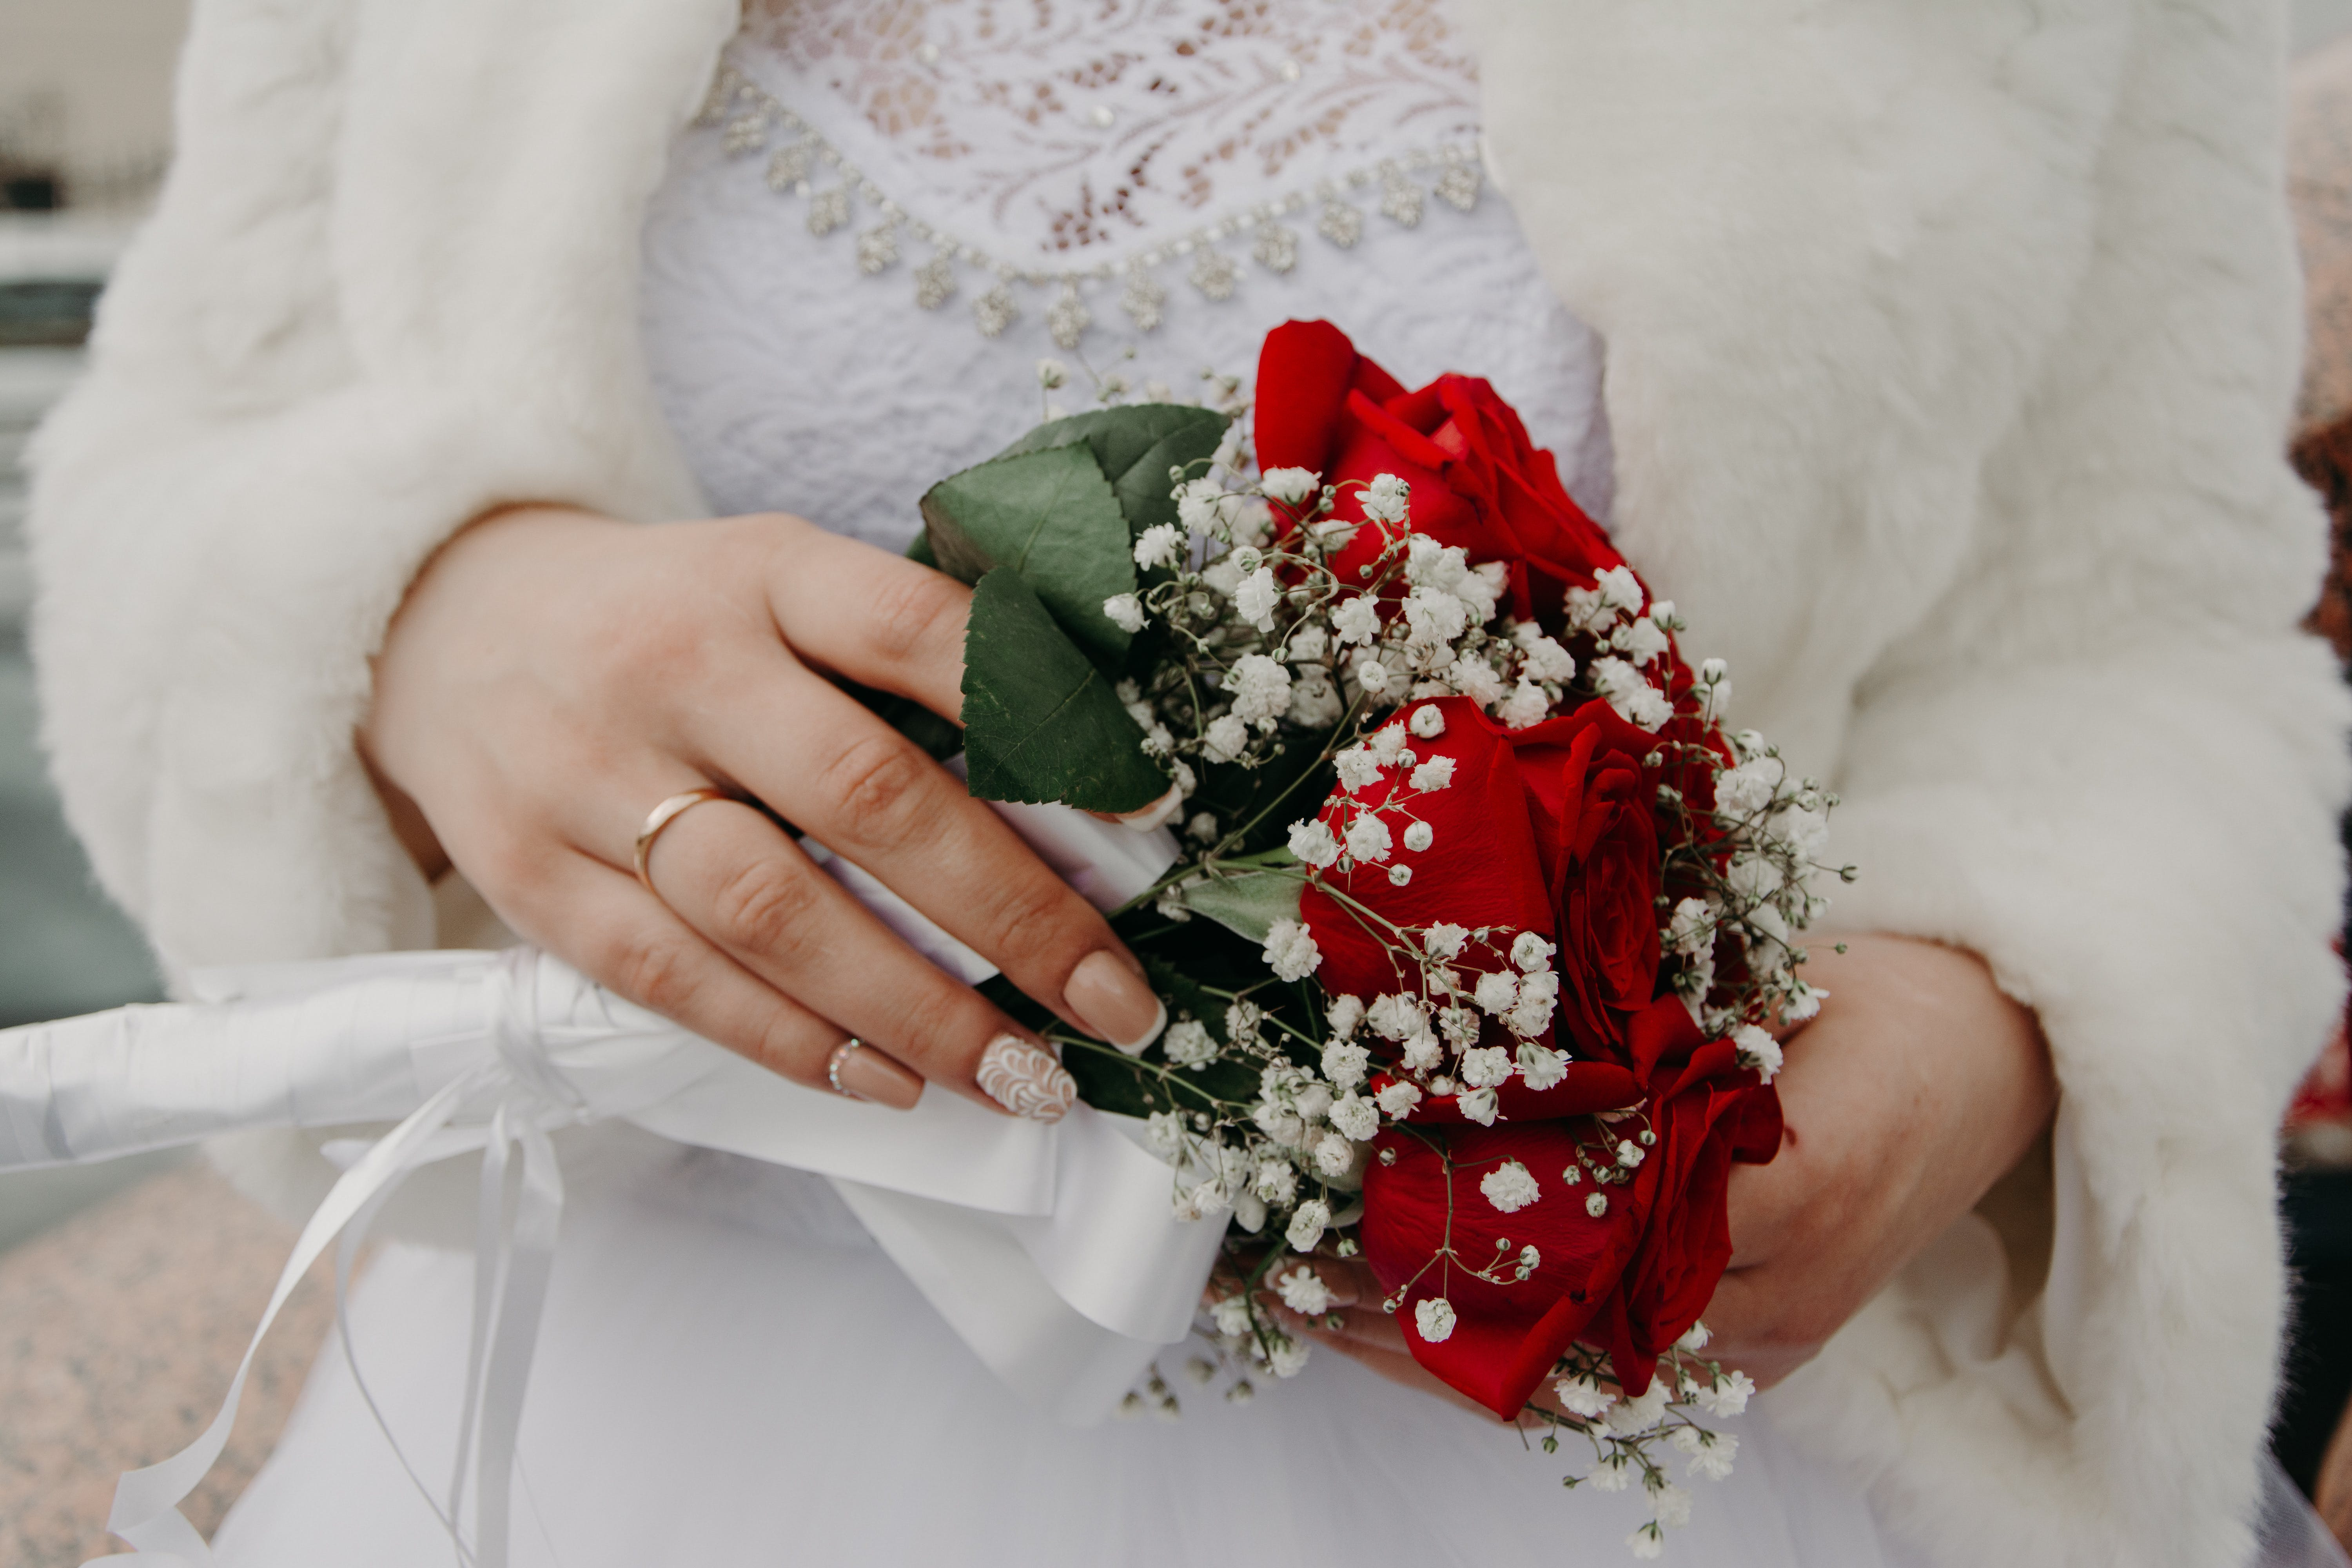 Woman Holding Red Rose Bouquet